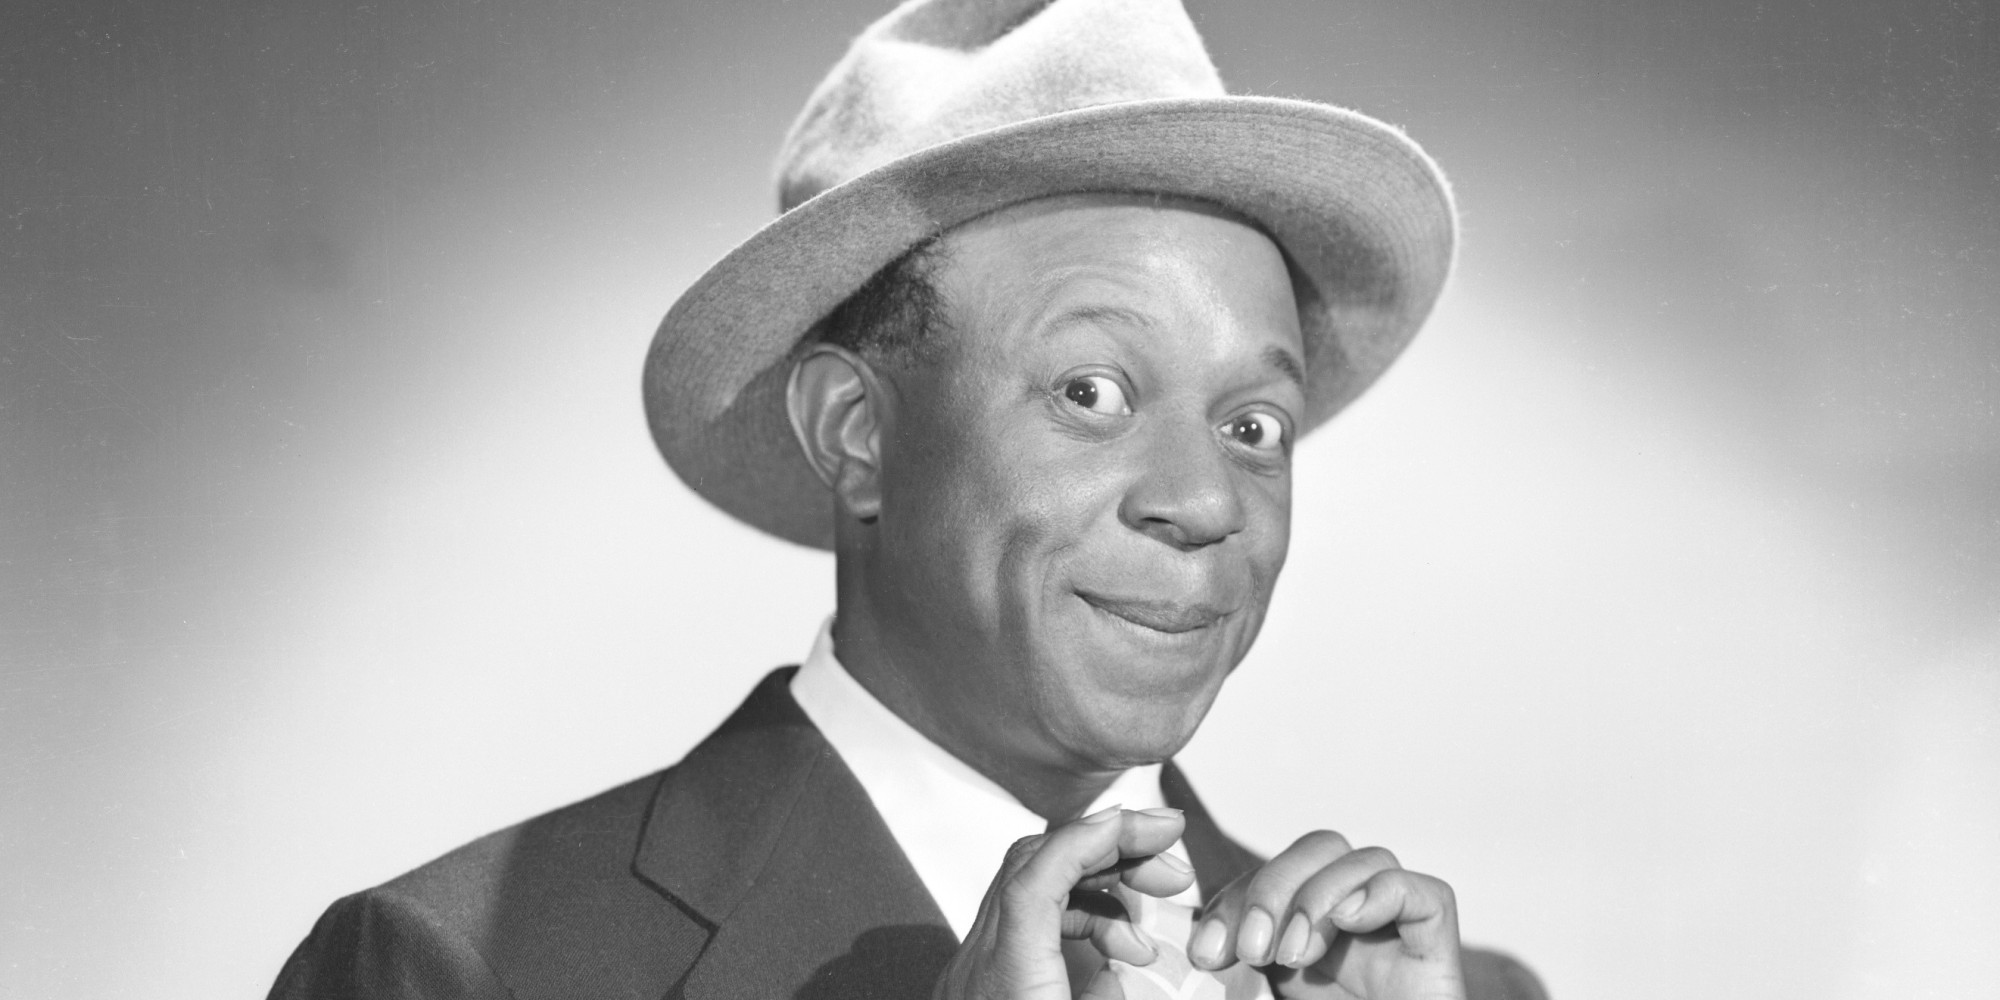 Rochester off jack benny show